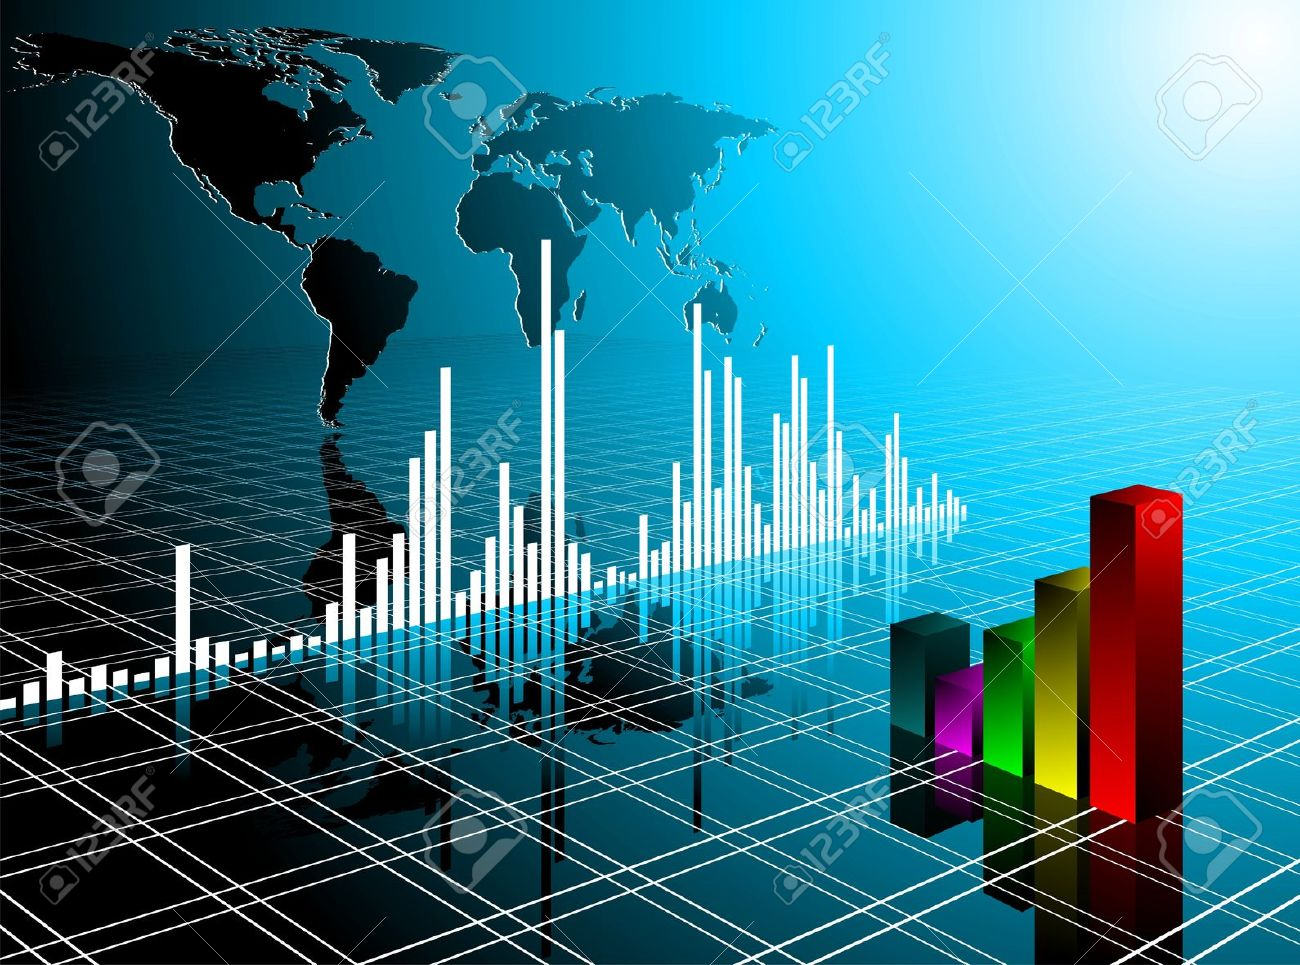 business illustration with world map  on blue background. Stock Photo - 7292307